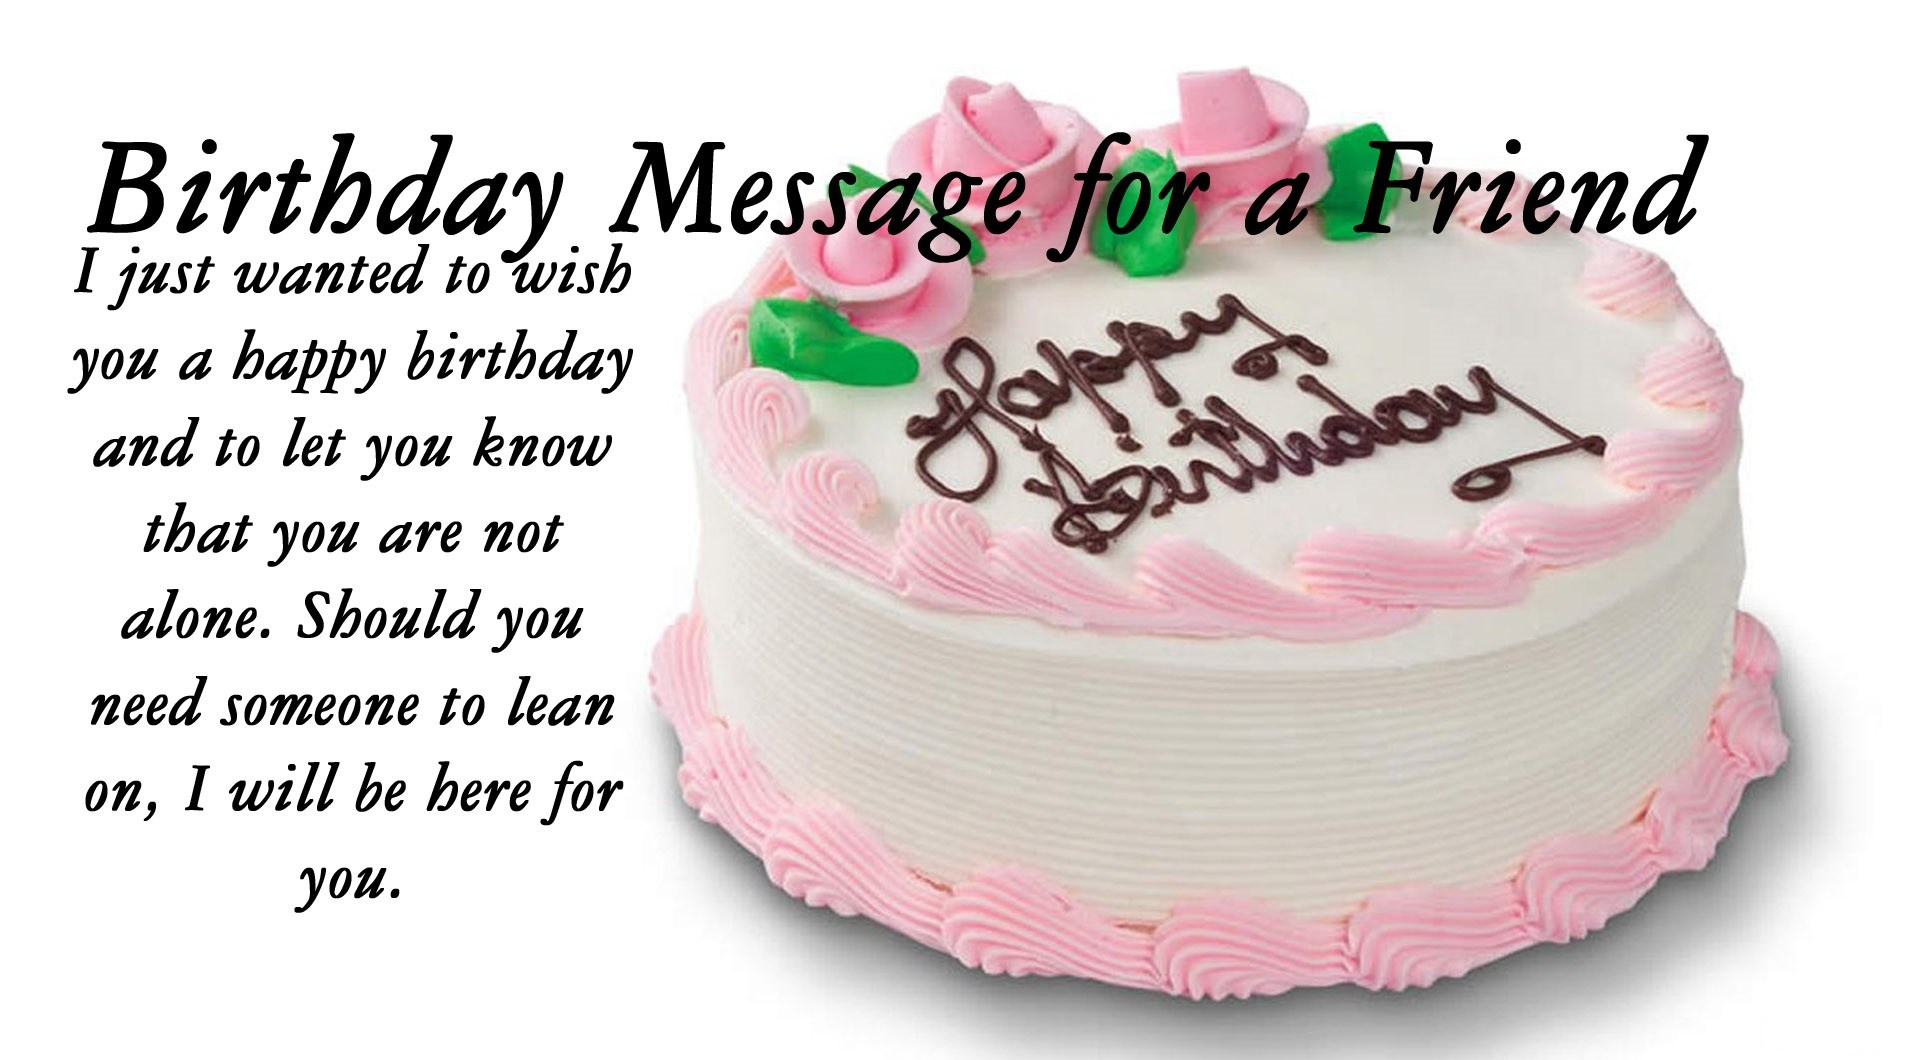 birthday wallpaper for friend ; Images-Of-Birthday-Cakes-For-Friends-wishes-images